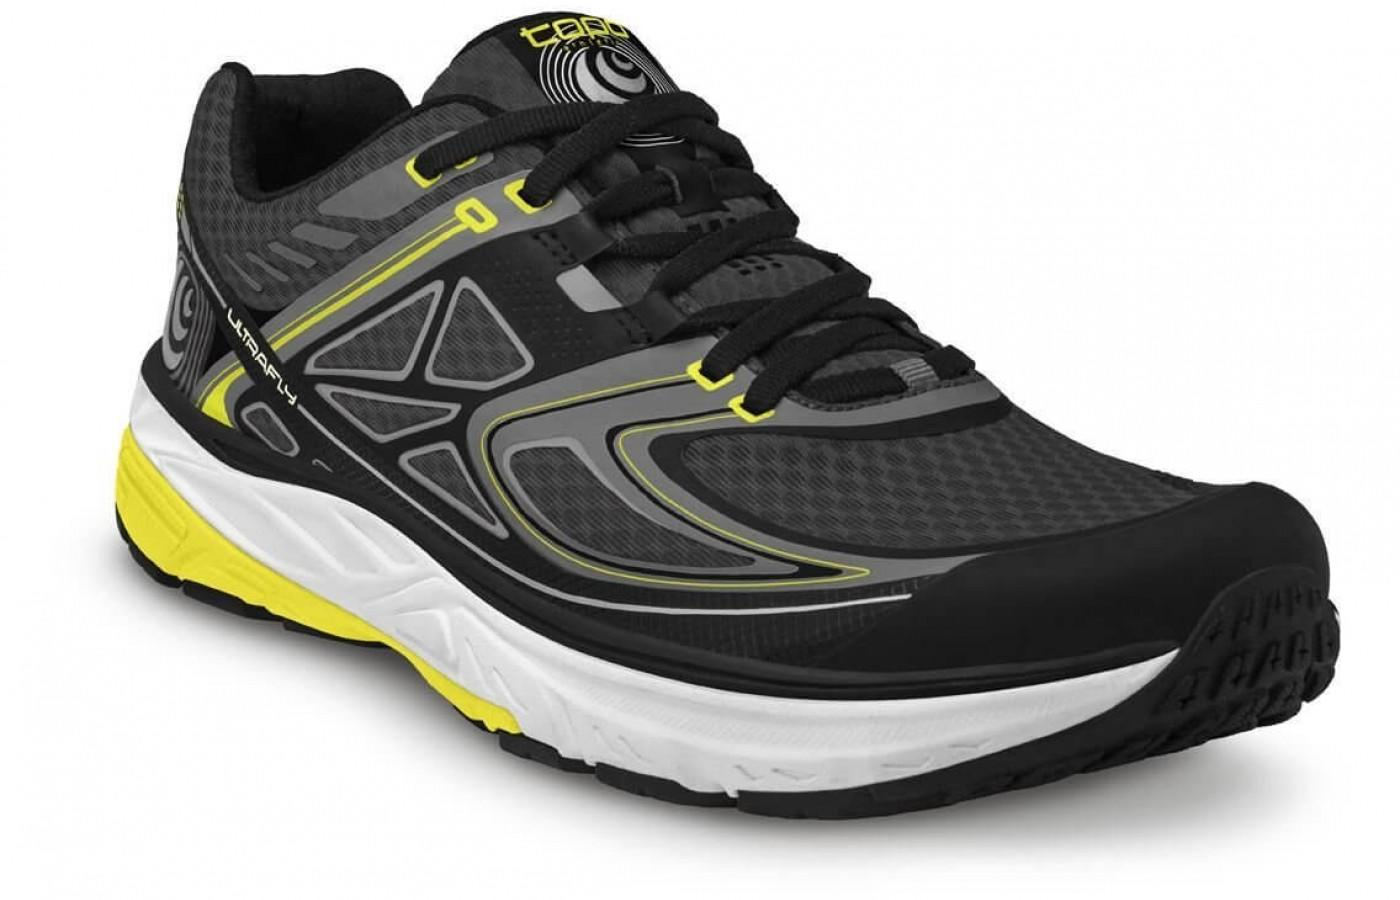 the Topo Athletic Ultrafly is a light trail runner with great cushioning for superior comfort